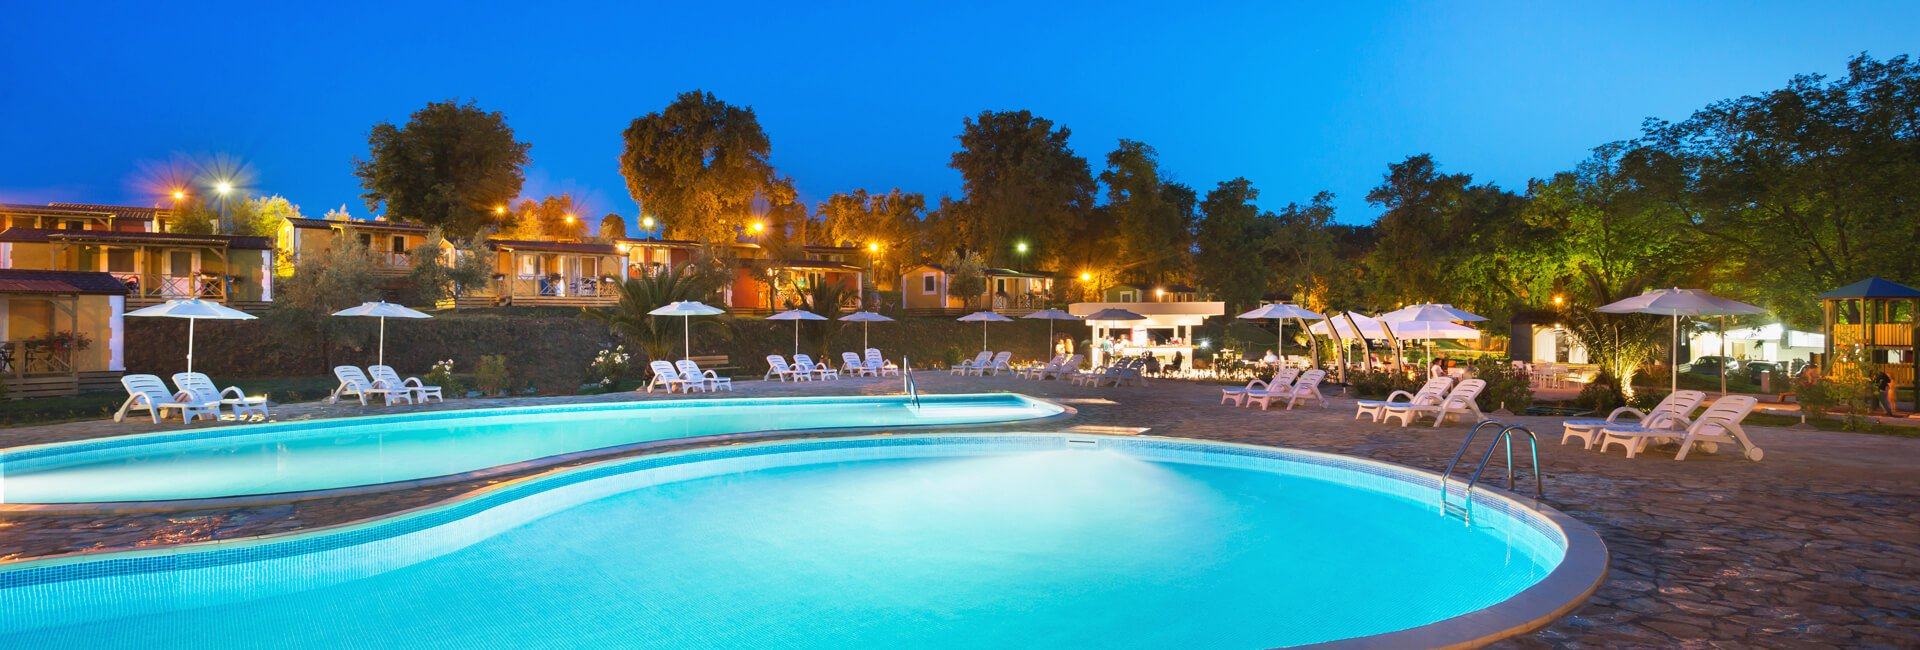 Aminess Park Mareda Campsite Relax Village pools II